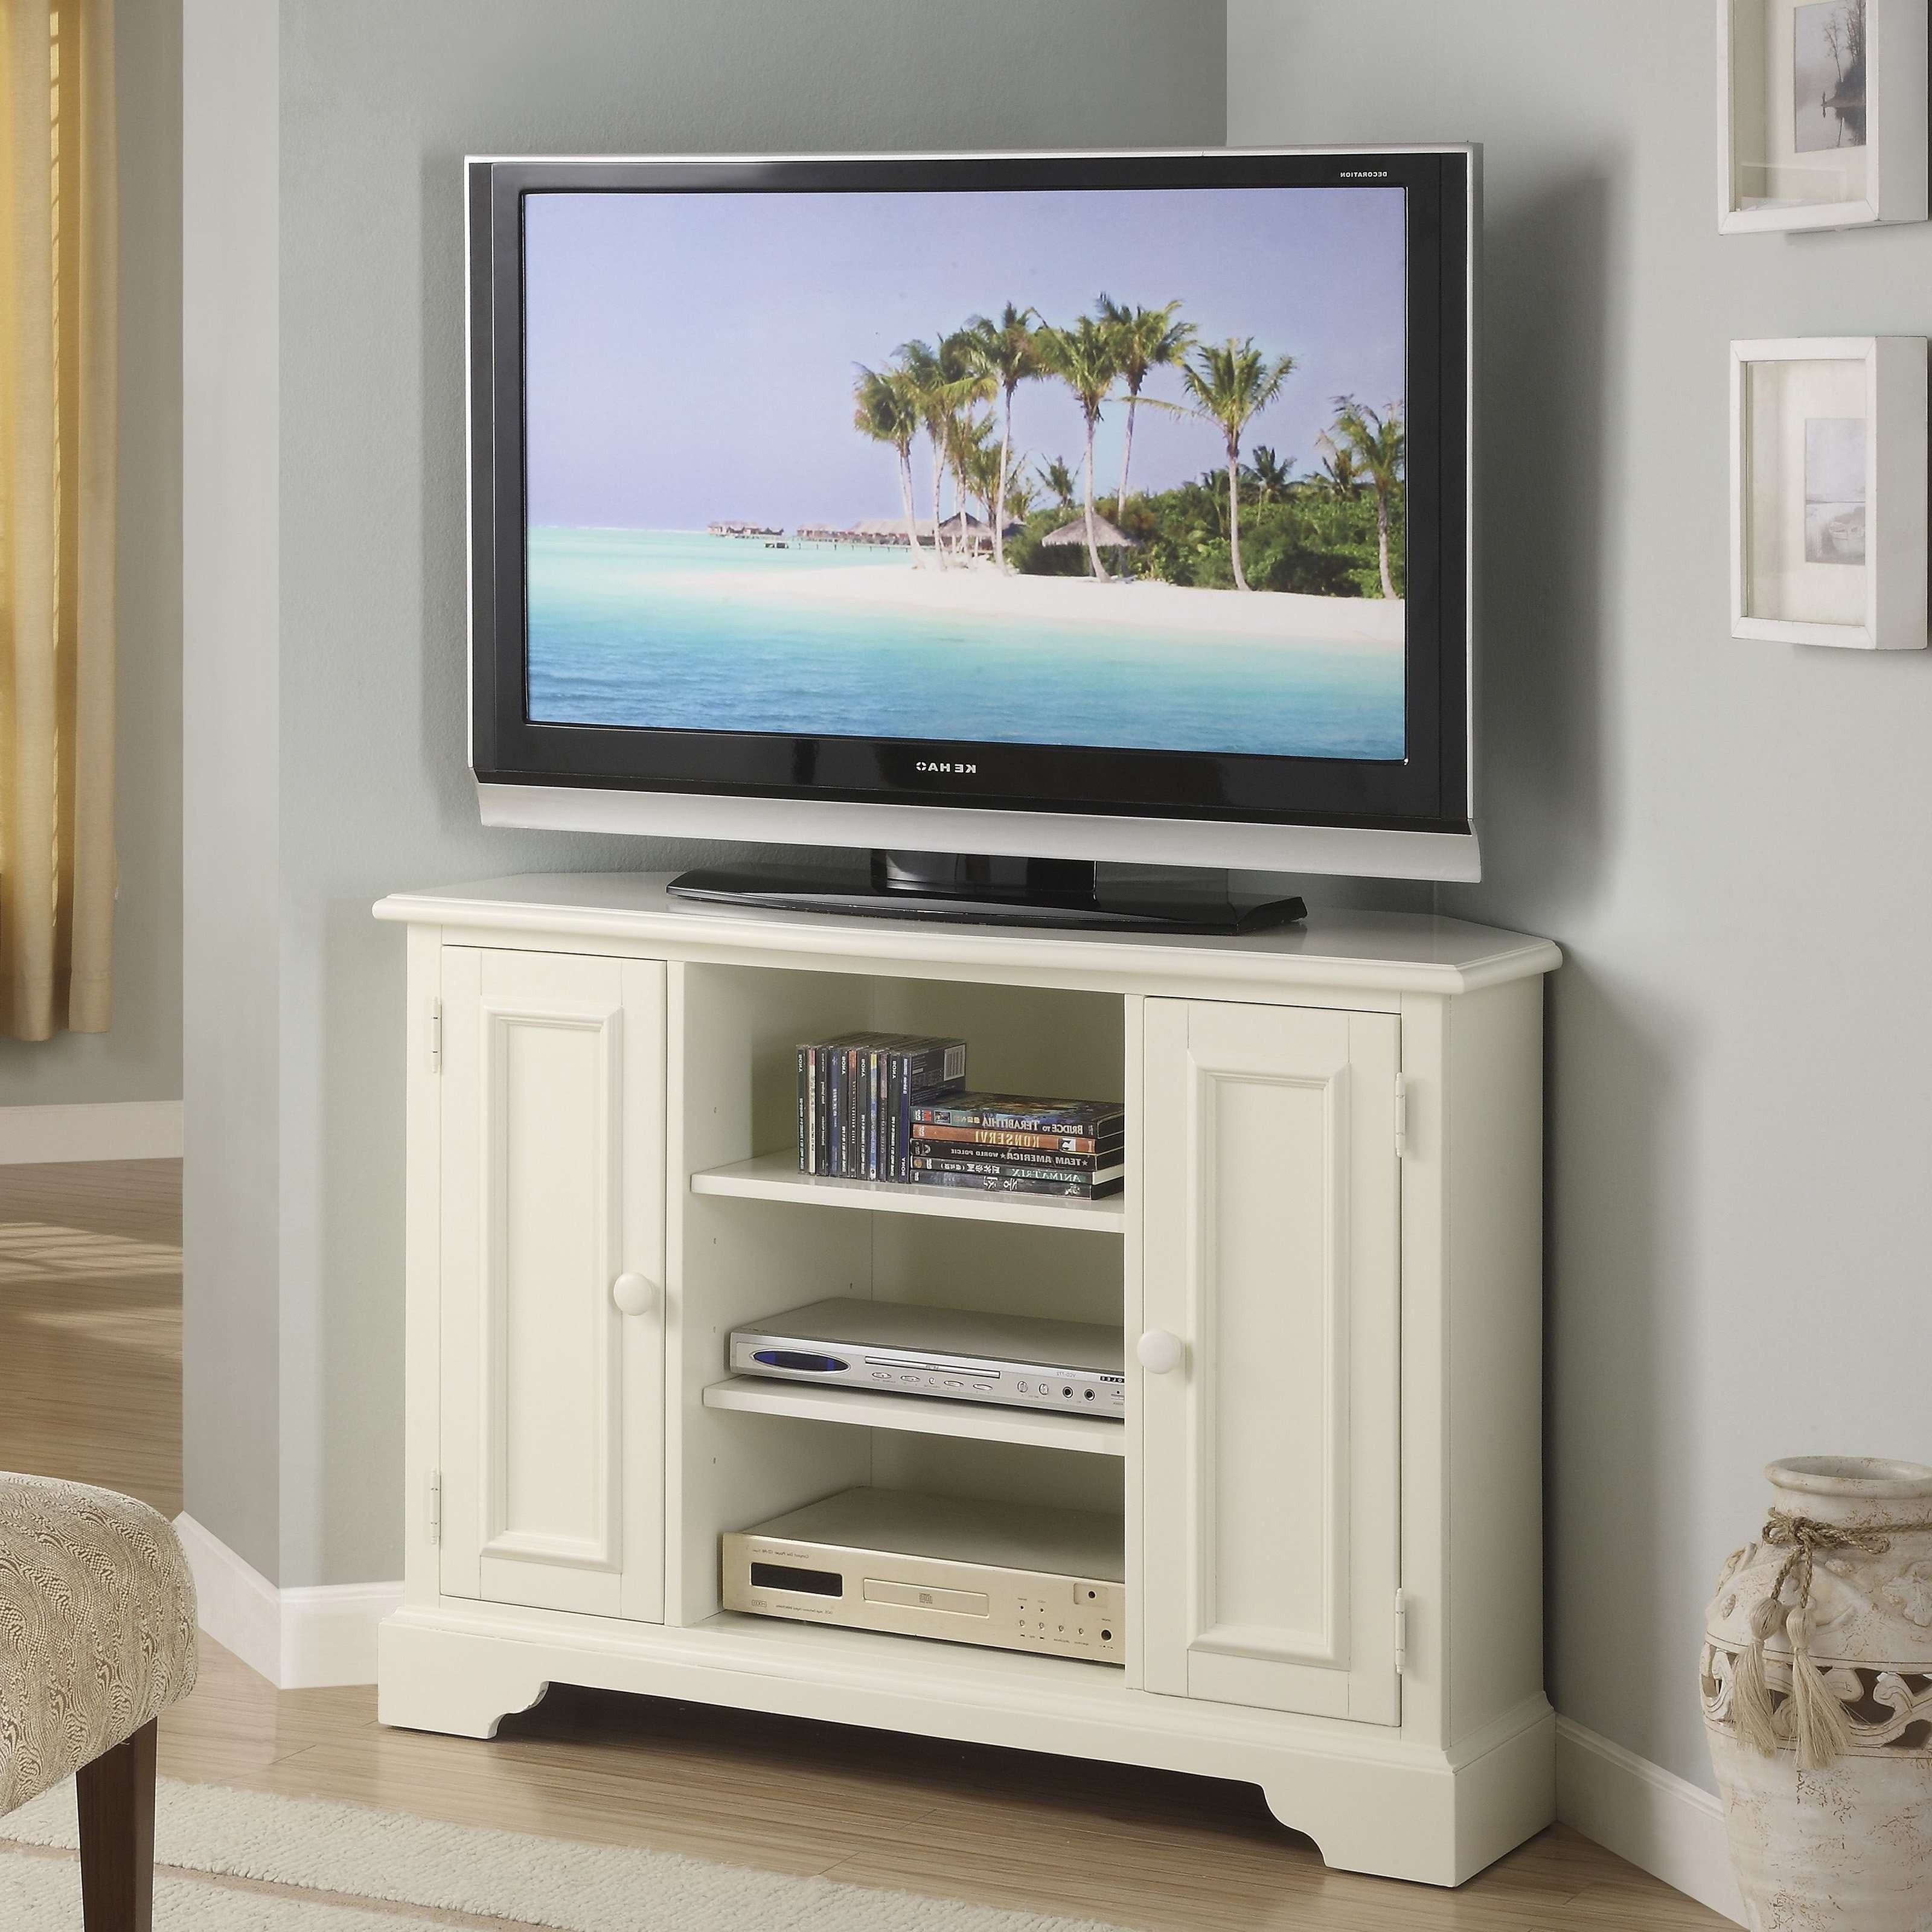 Tall Tv Stand for Bedroom Beautiful 2020 Best Of White Tall Tv Stands